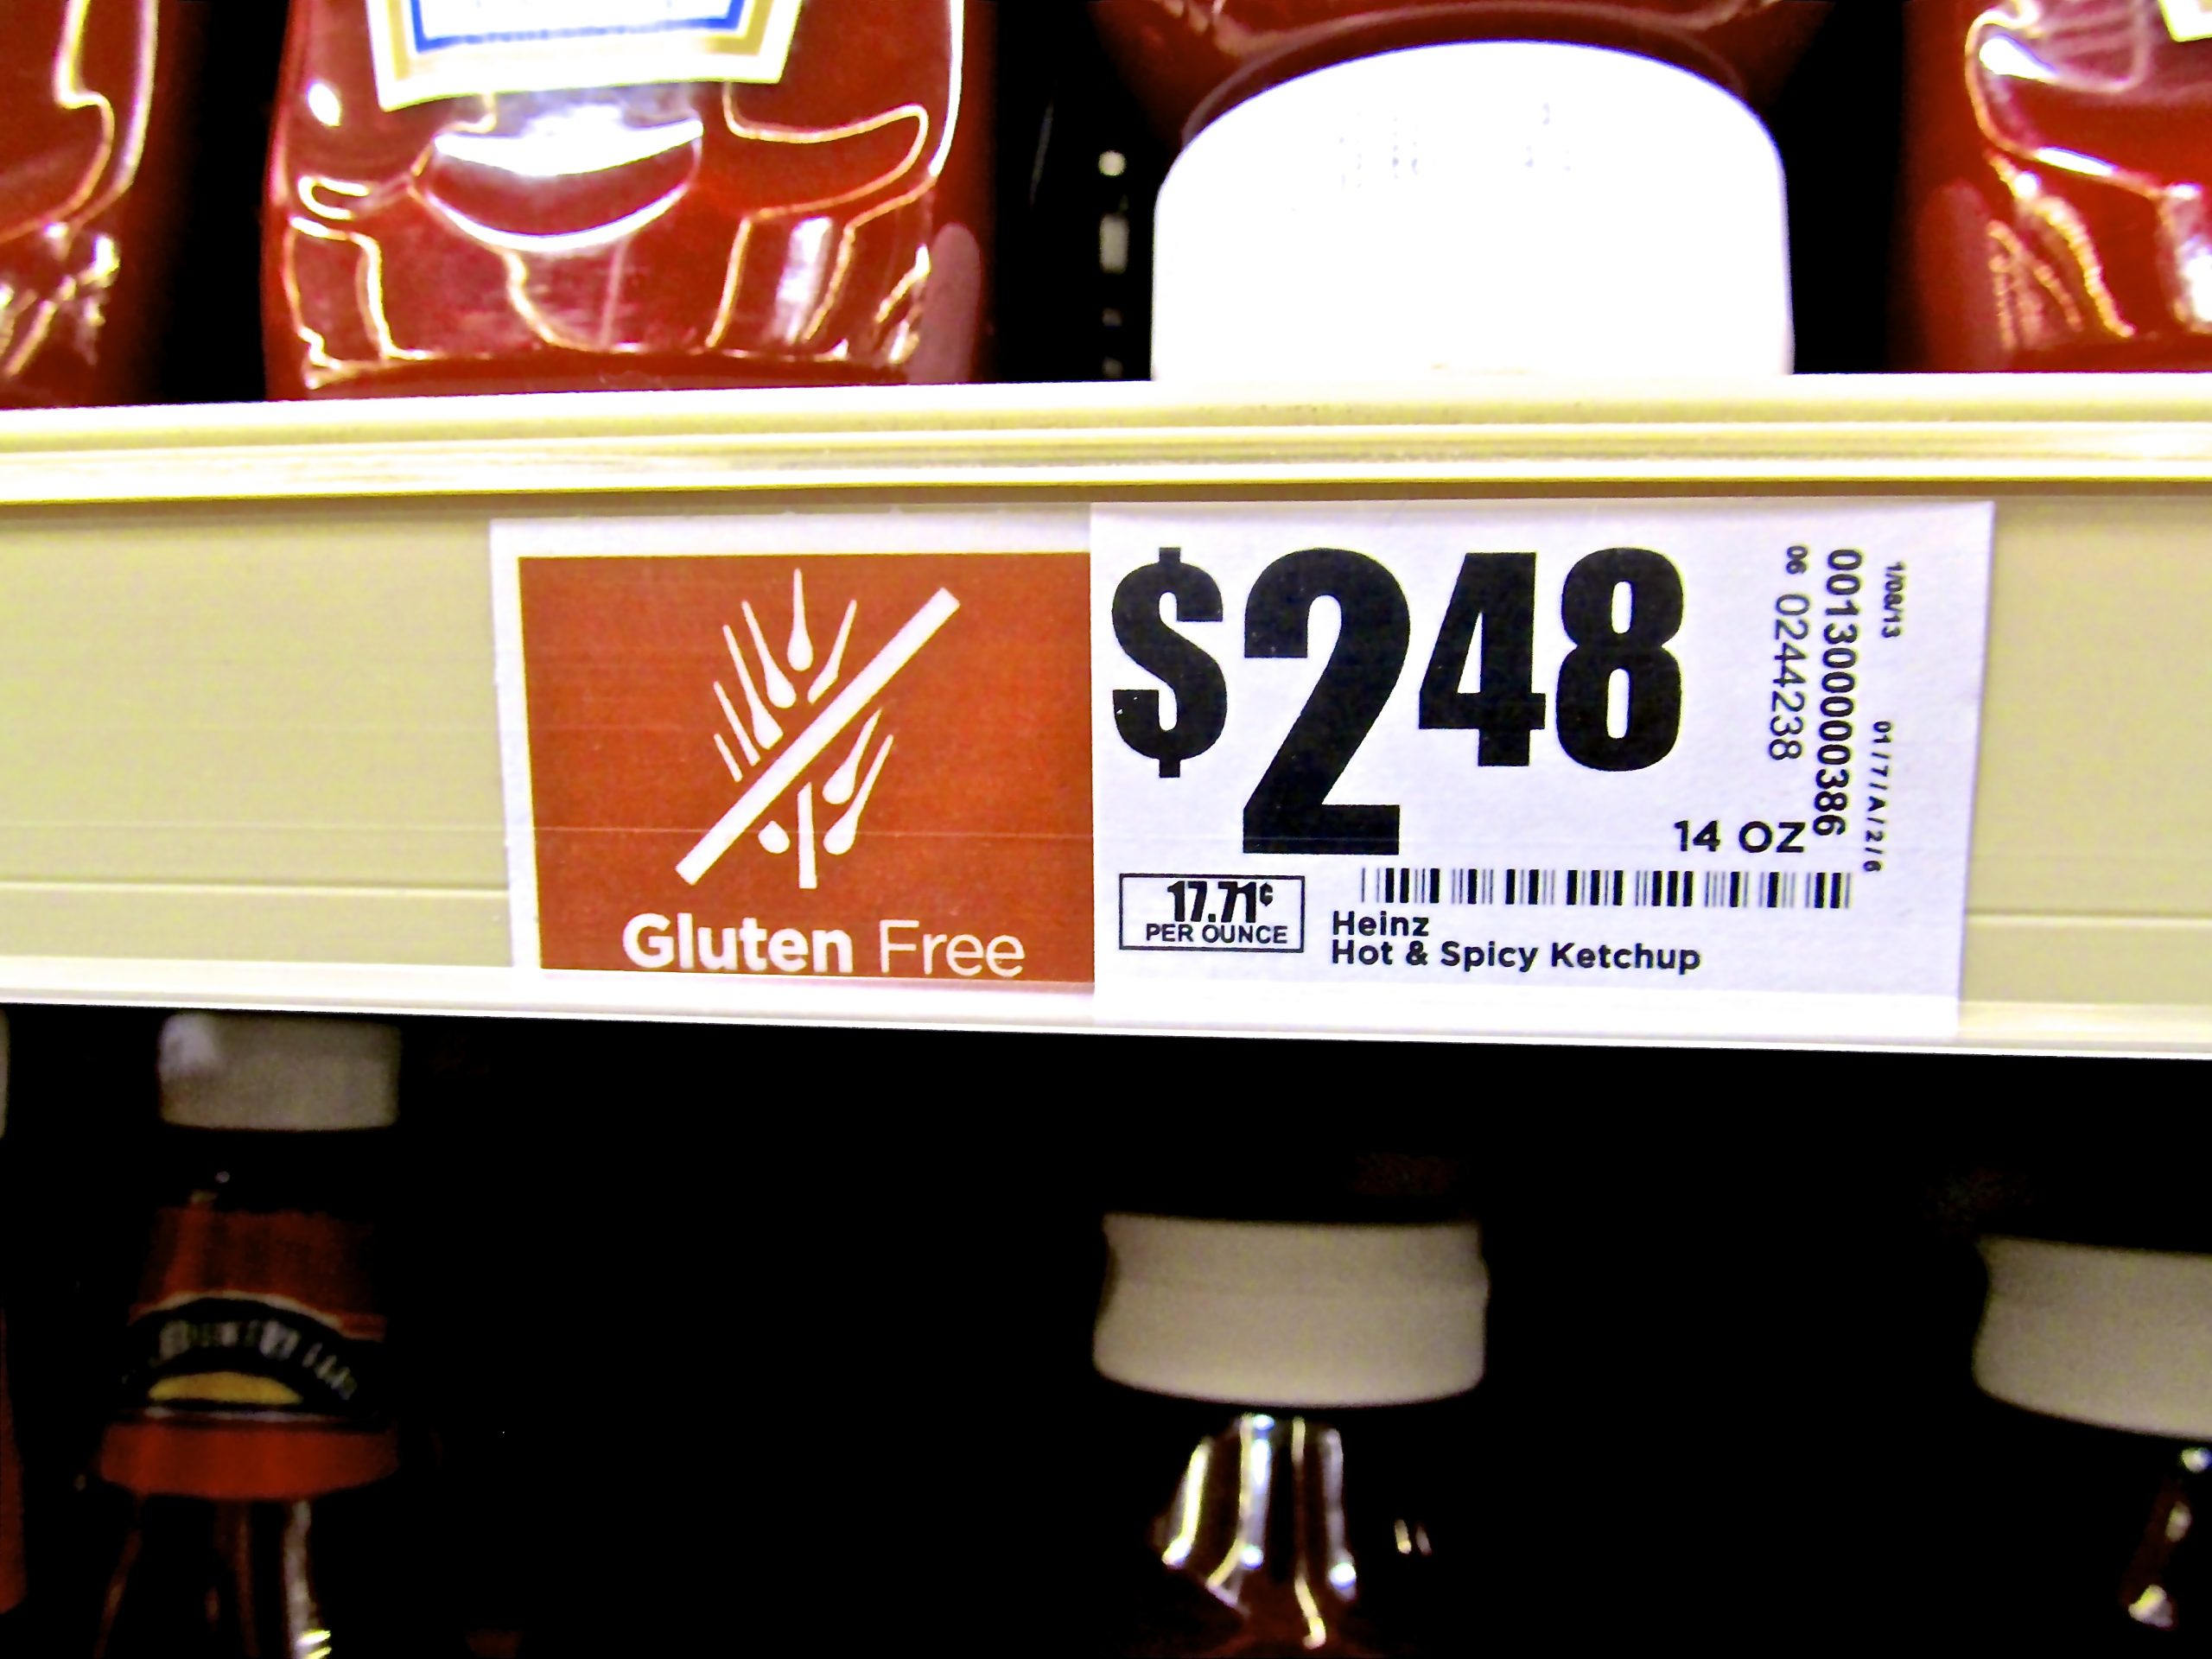 H-E-B's price tags accompanied with healthy notifications.